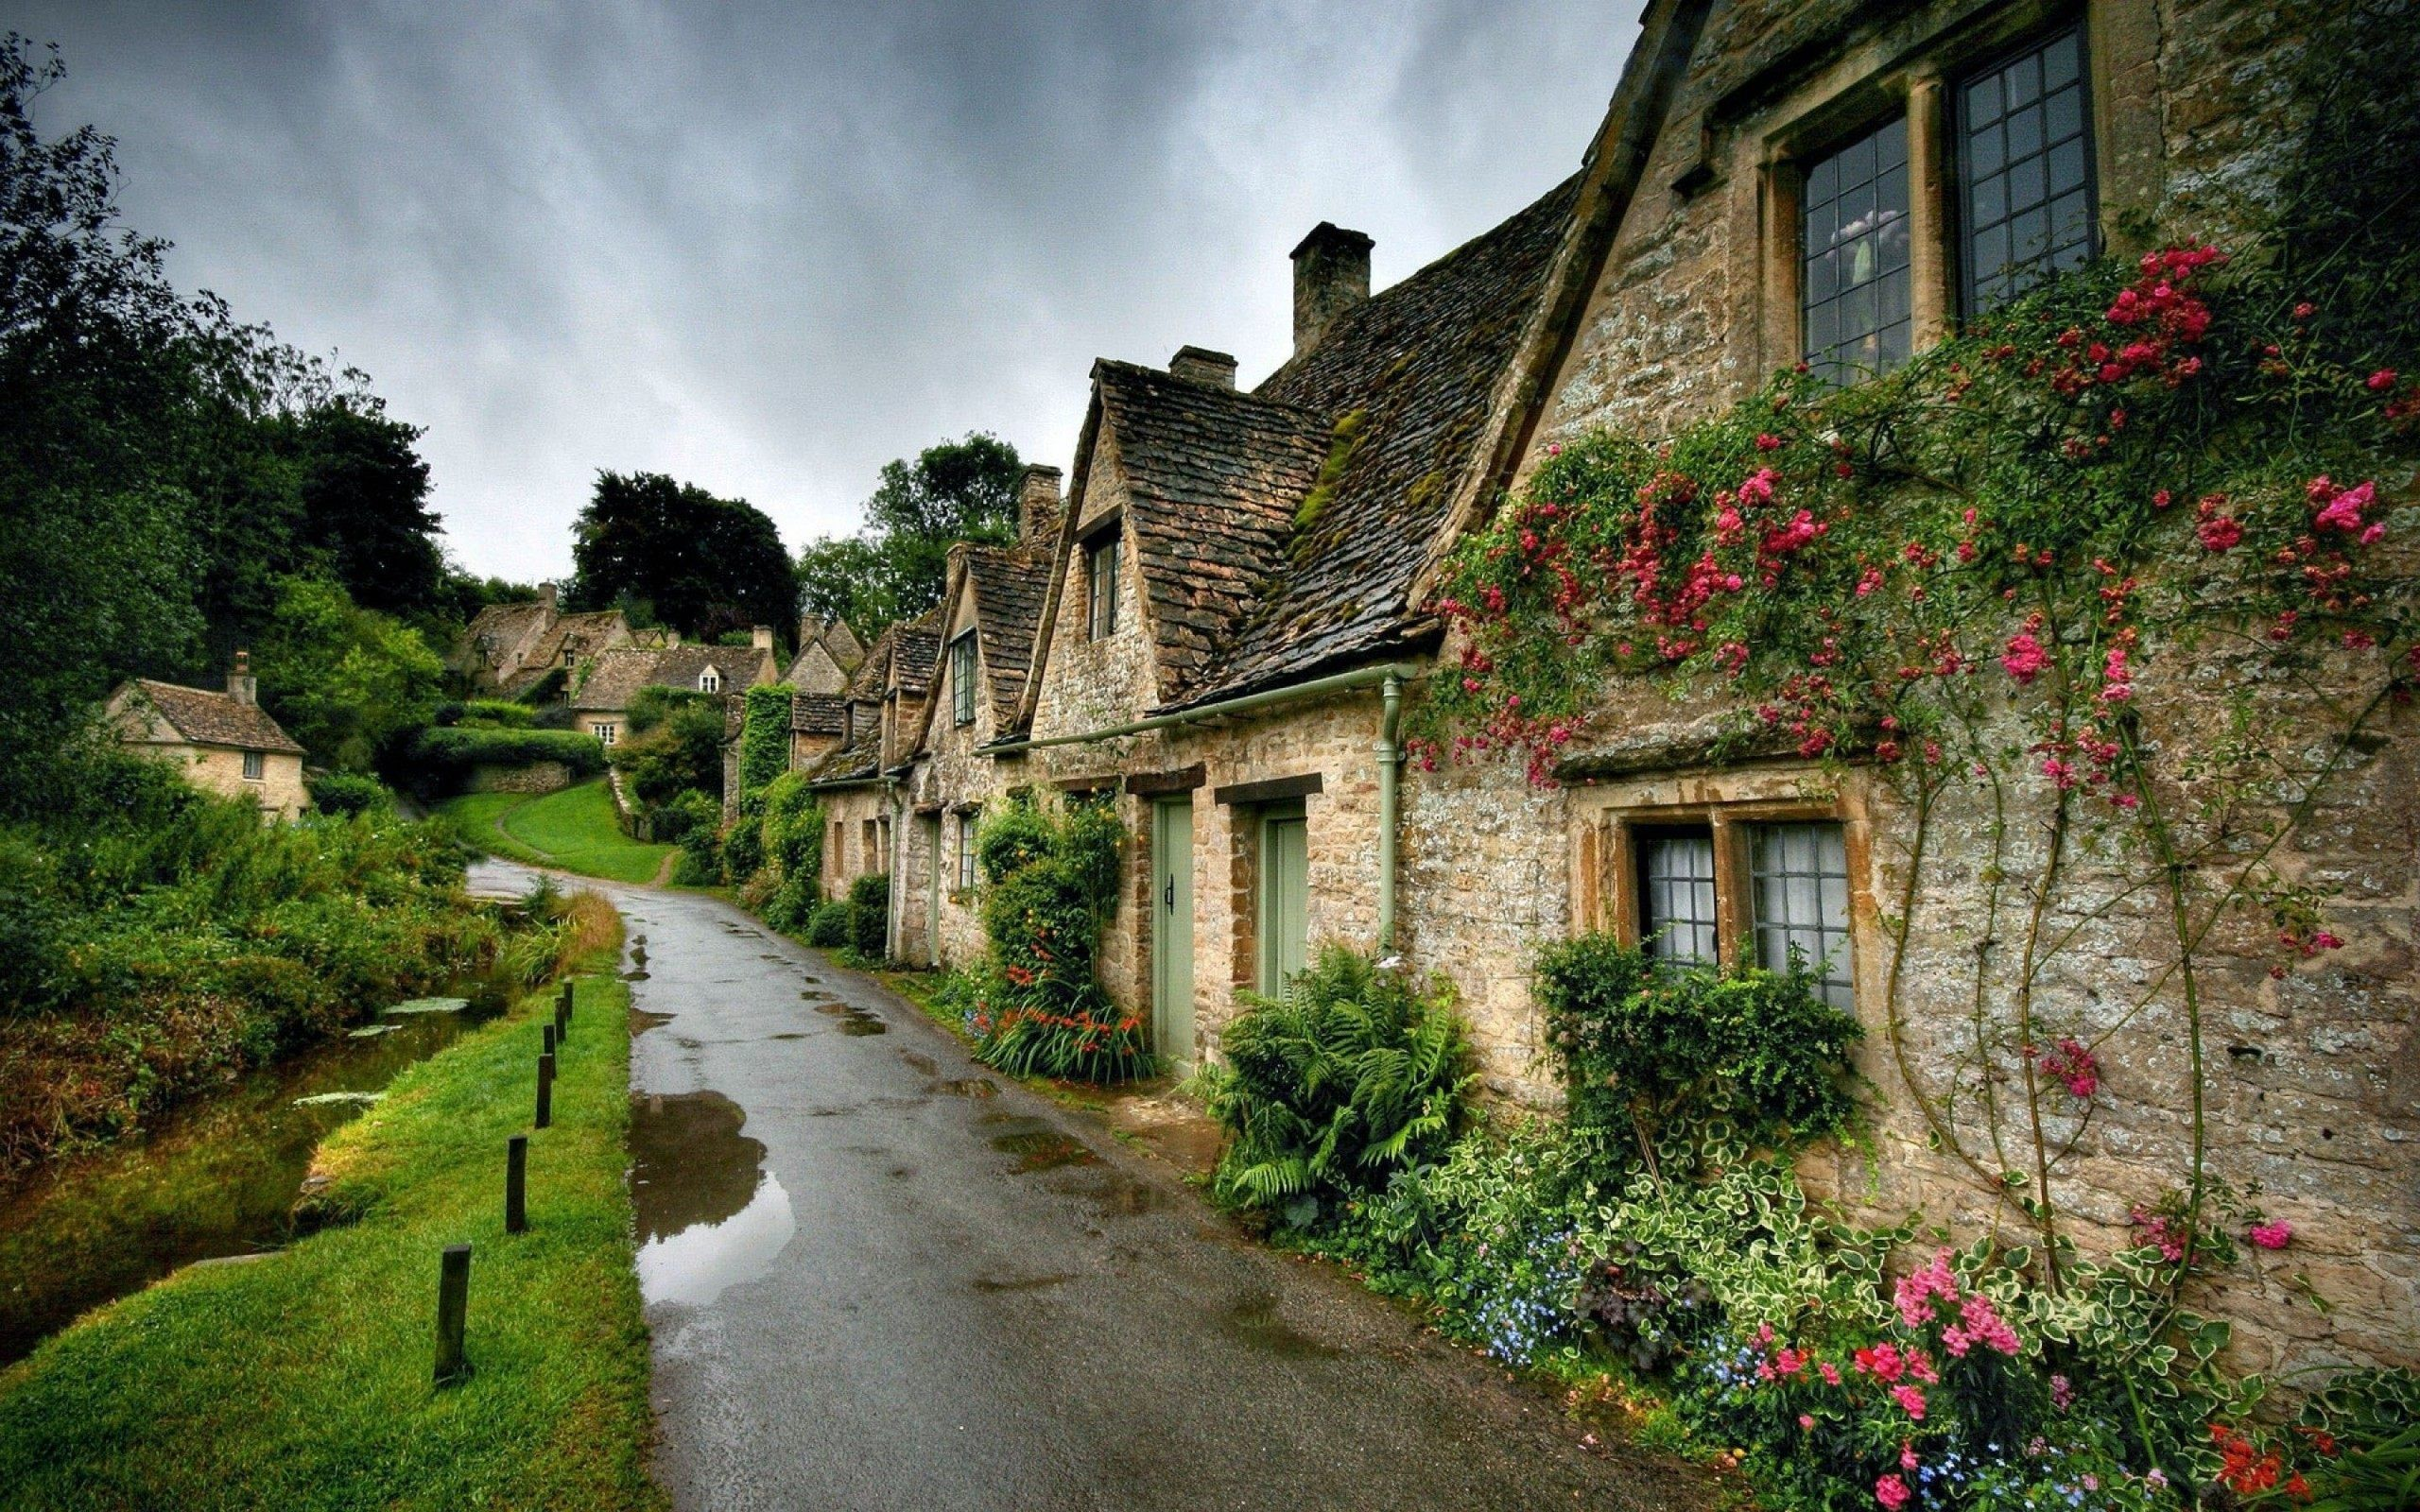 Pin by LesleyAnn~ on Scenery in England, Ireland, Scotland and Wales ... for French Countryside Wallpaper  35fsj